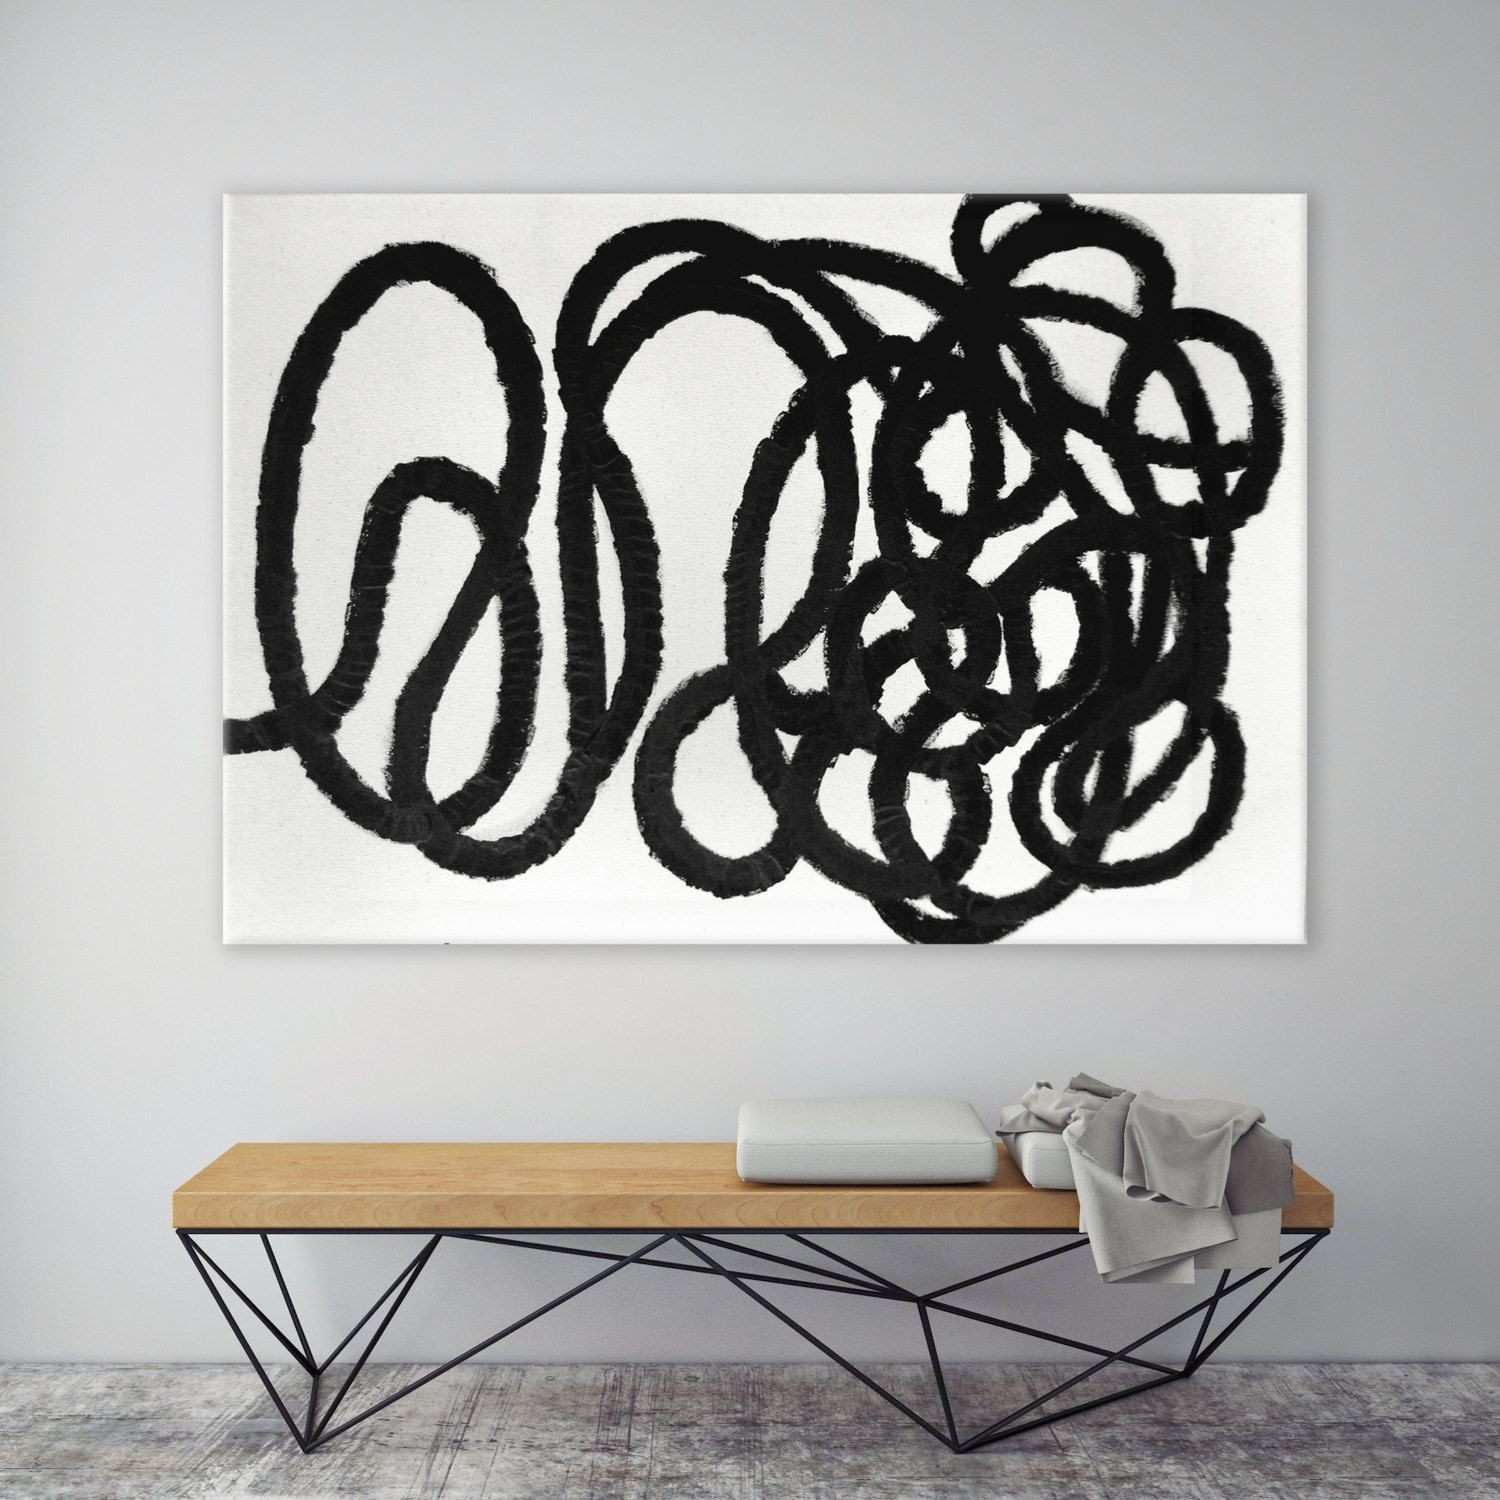 Wall Art Minimalist Black and White Modern Abstract Canvas